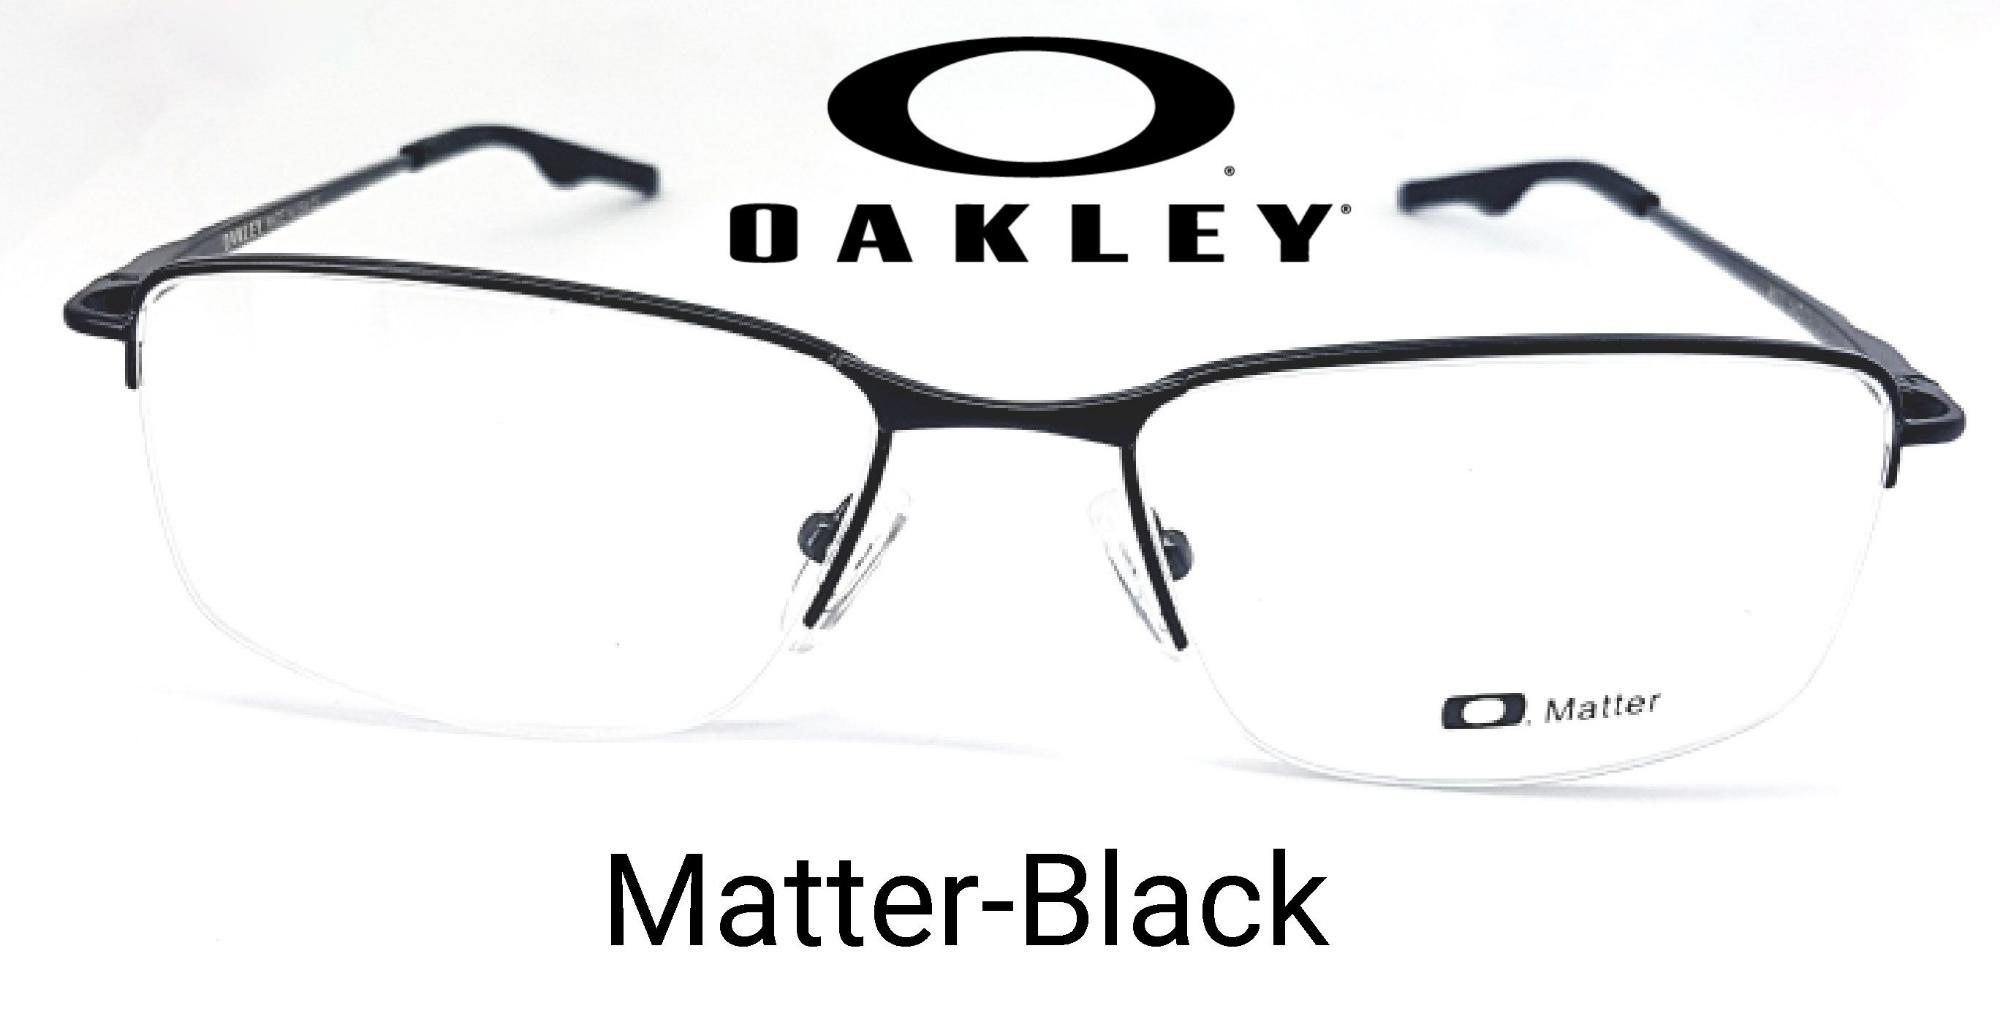 d40a0ccc62 Sell oakley eyeglasses pitchman cheapest best quality